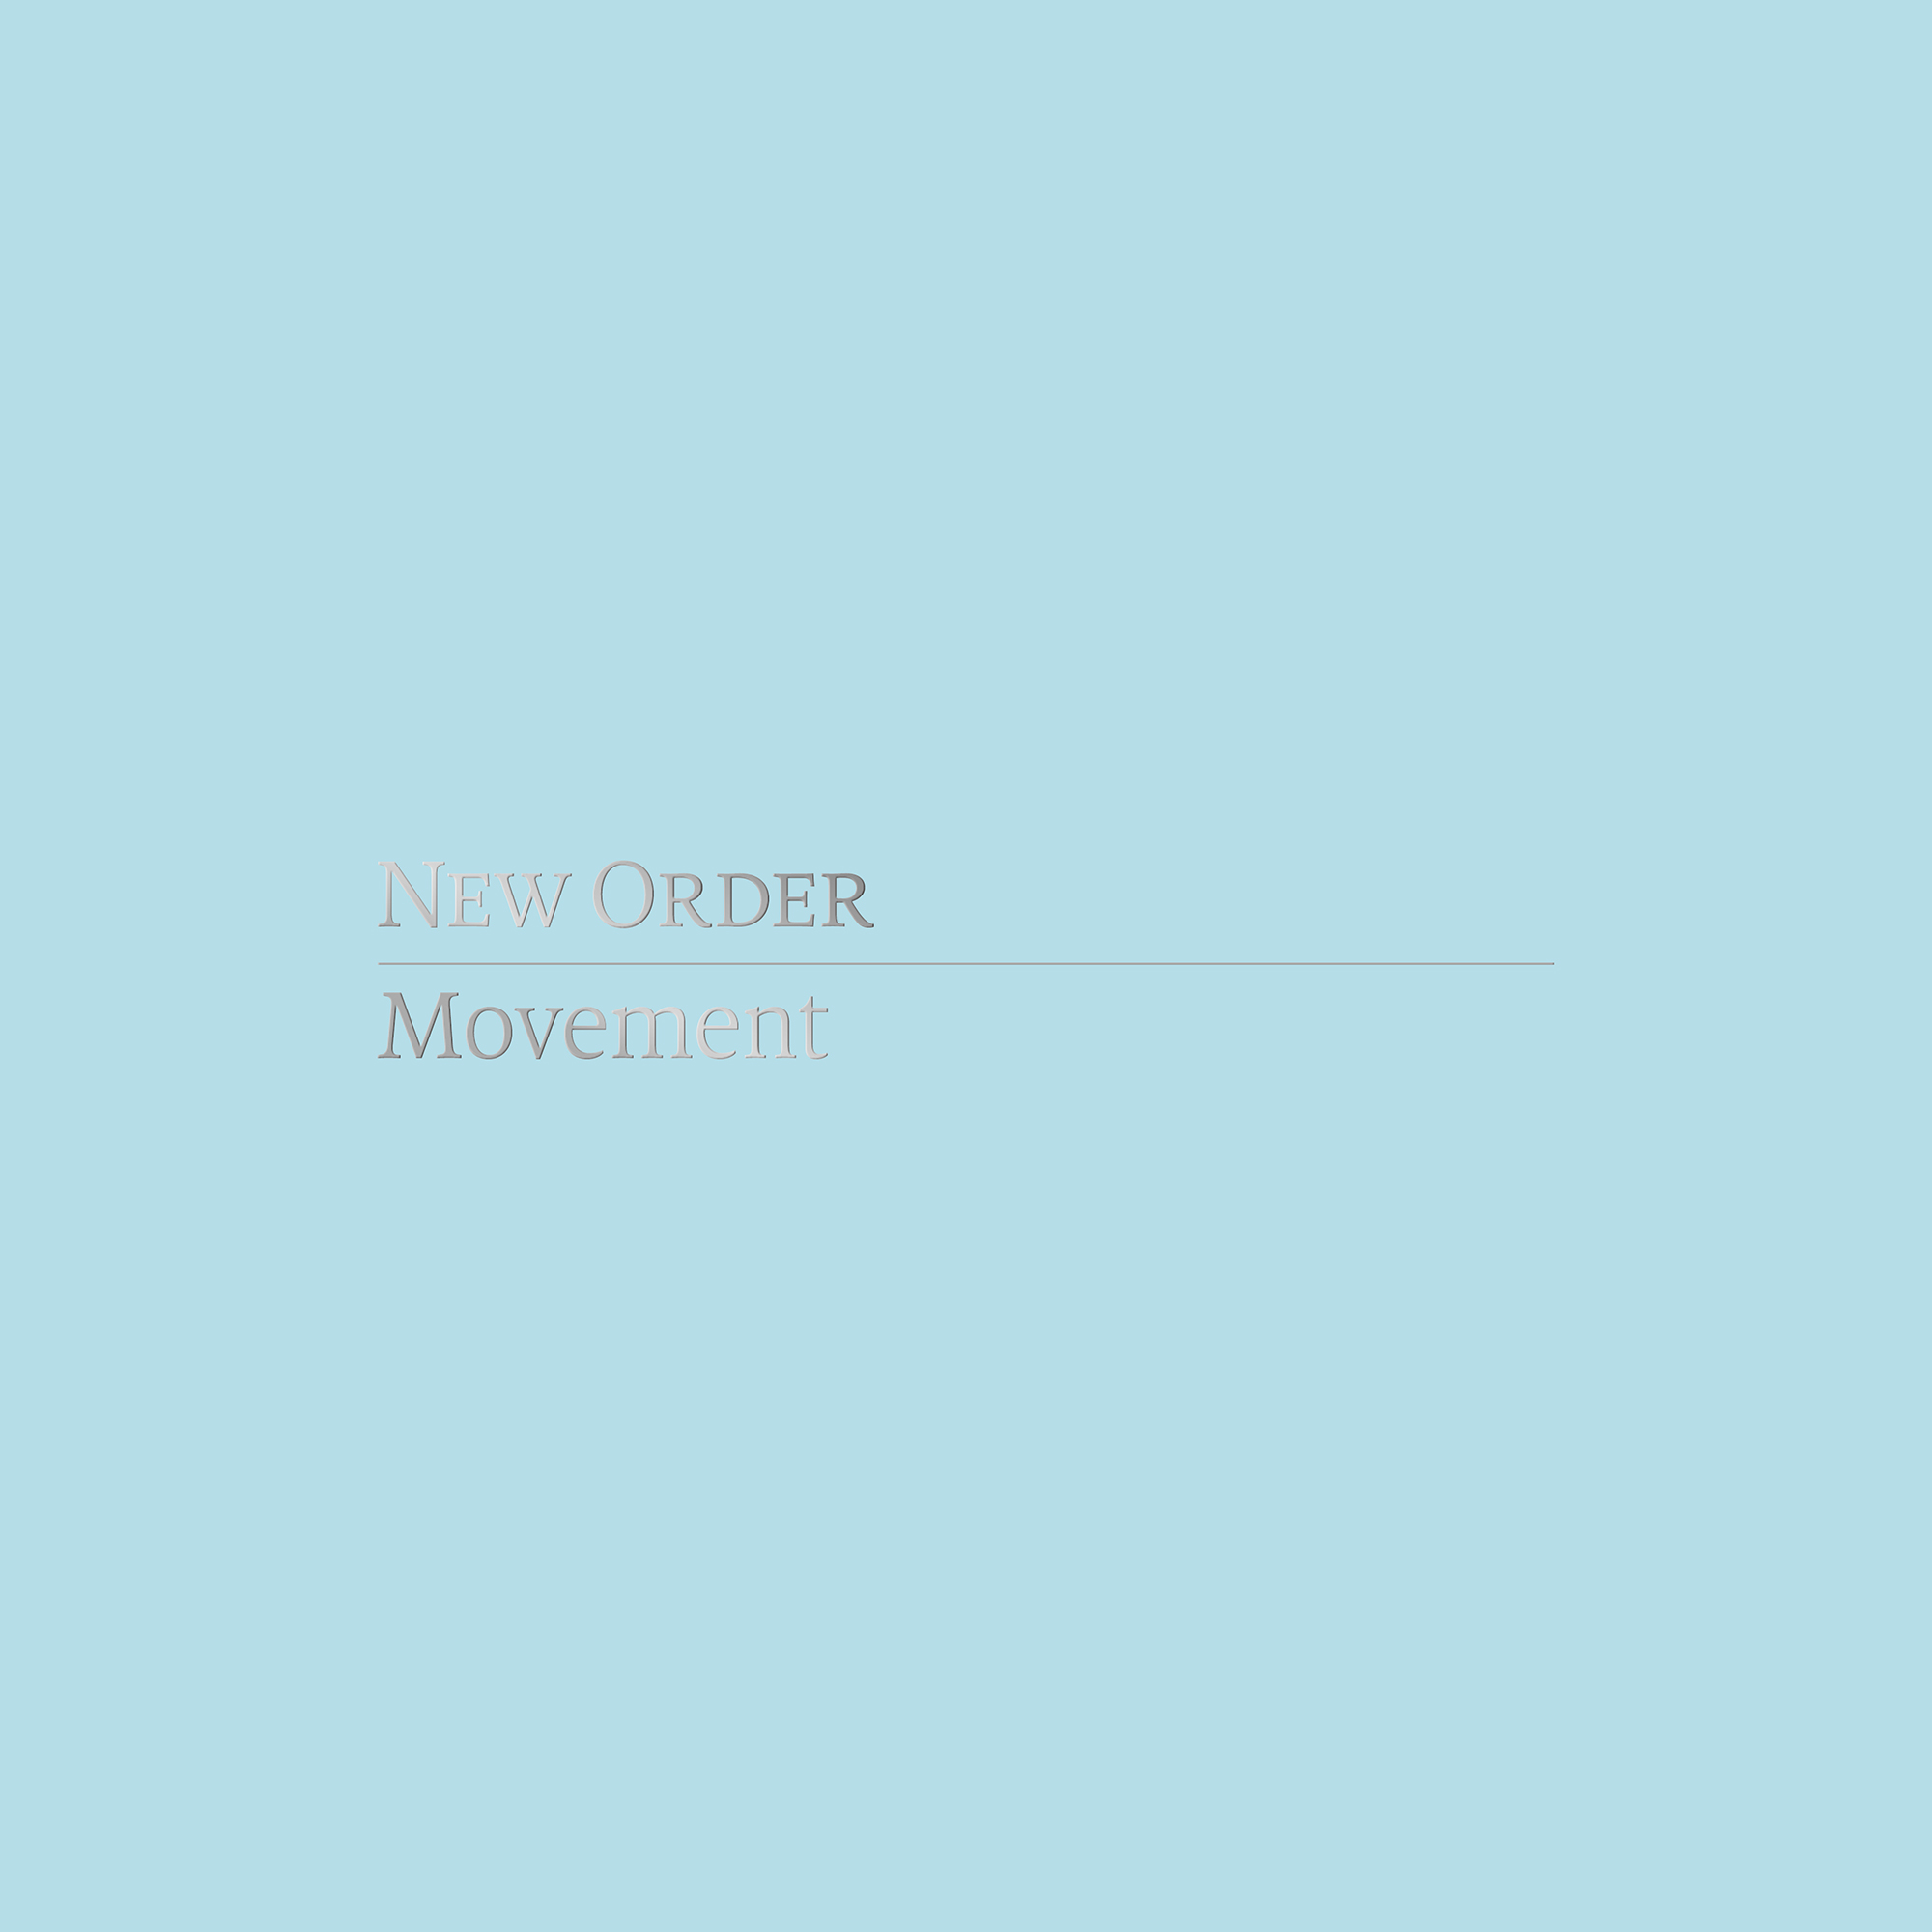 New Order「Movement」ジャケット